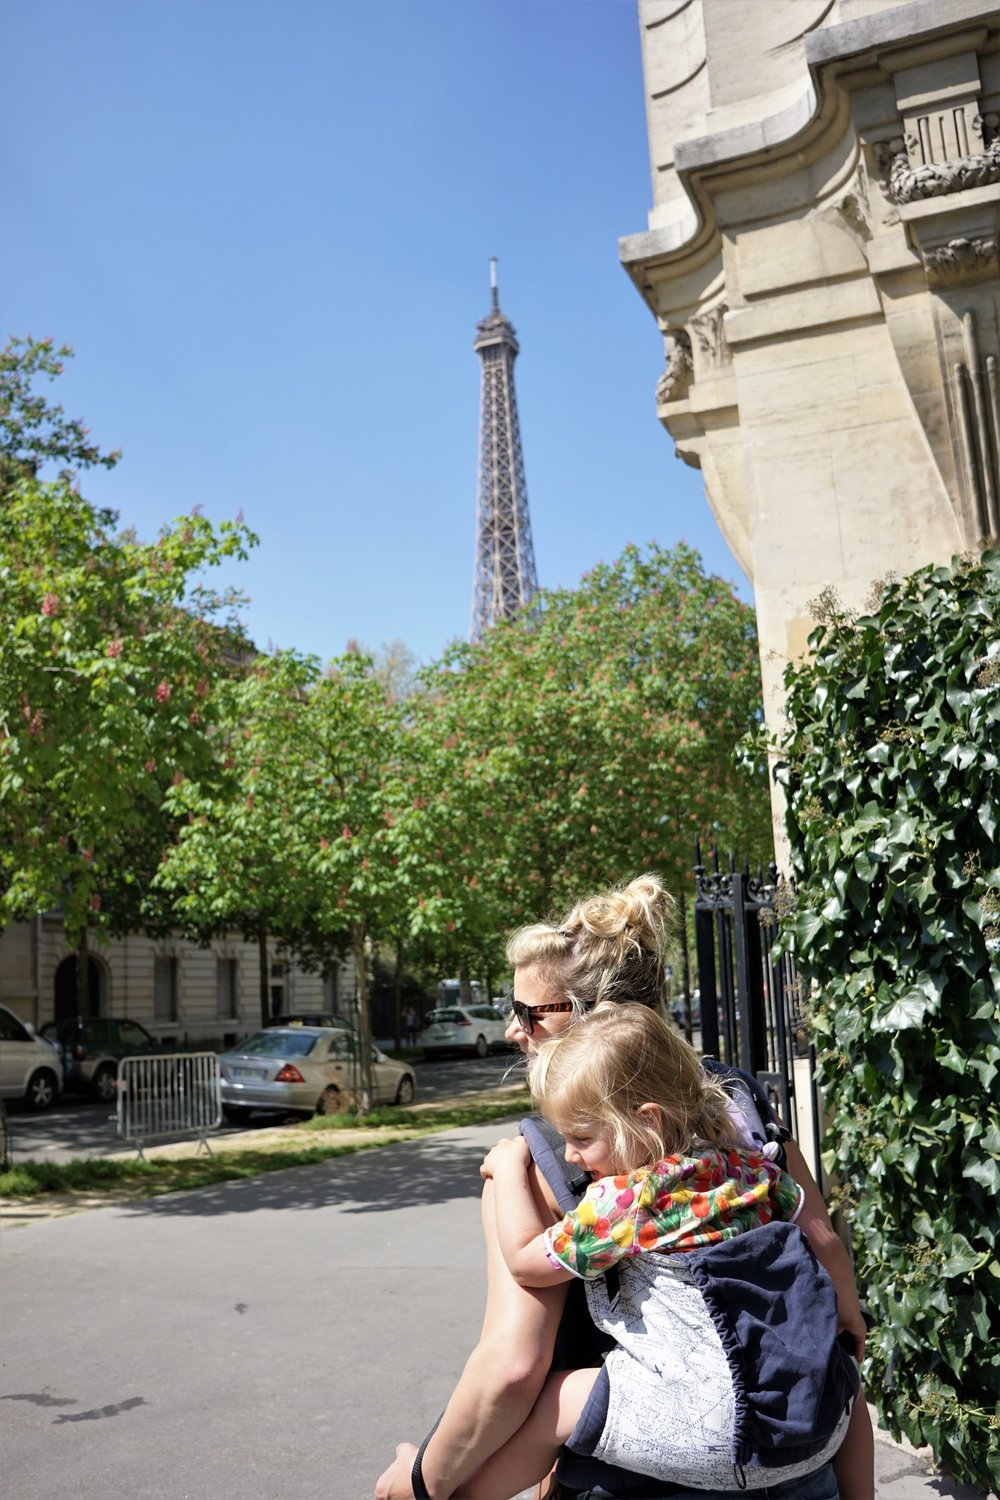 On our way to find coffee we FOUND some awesome Eiffel Tower views